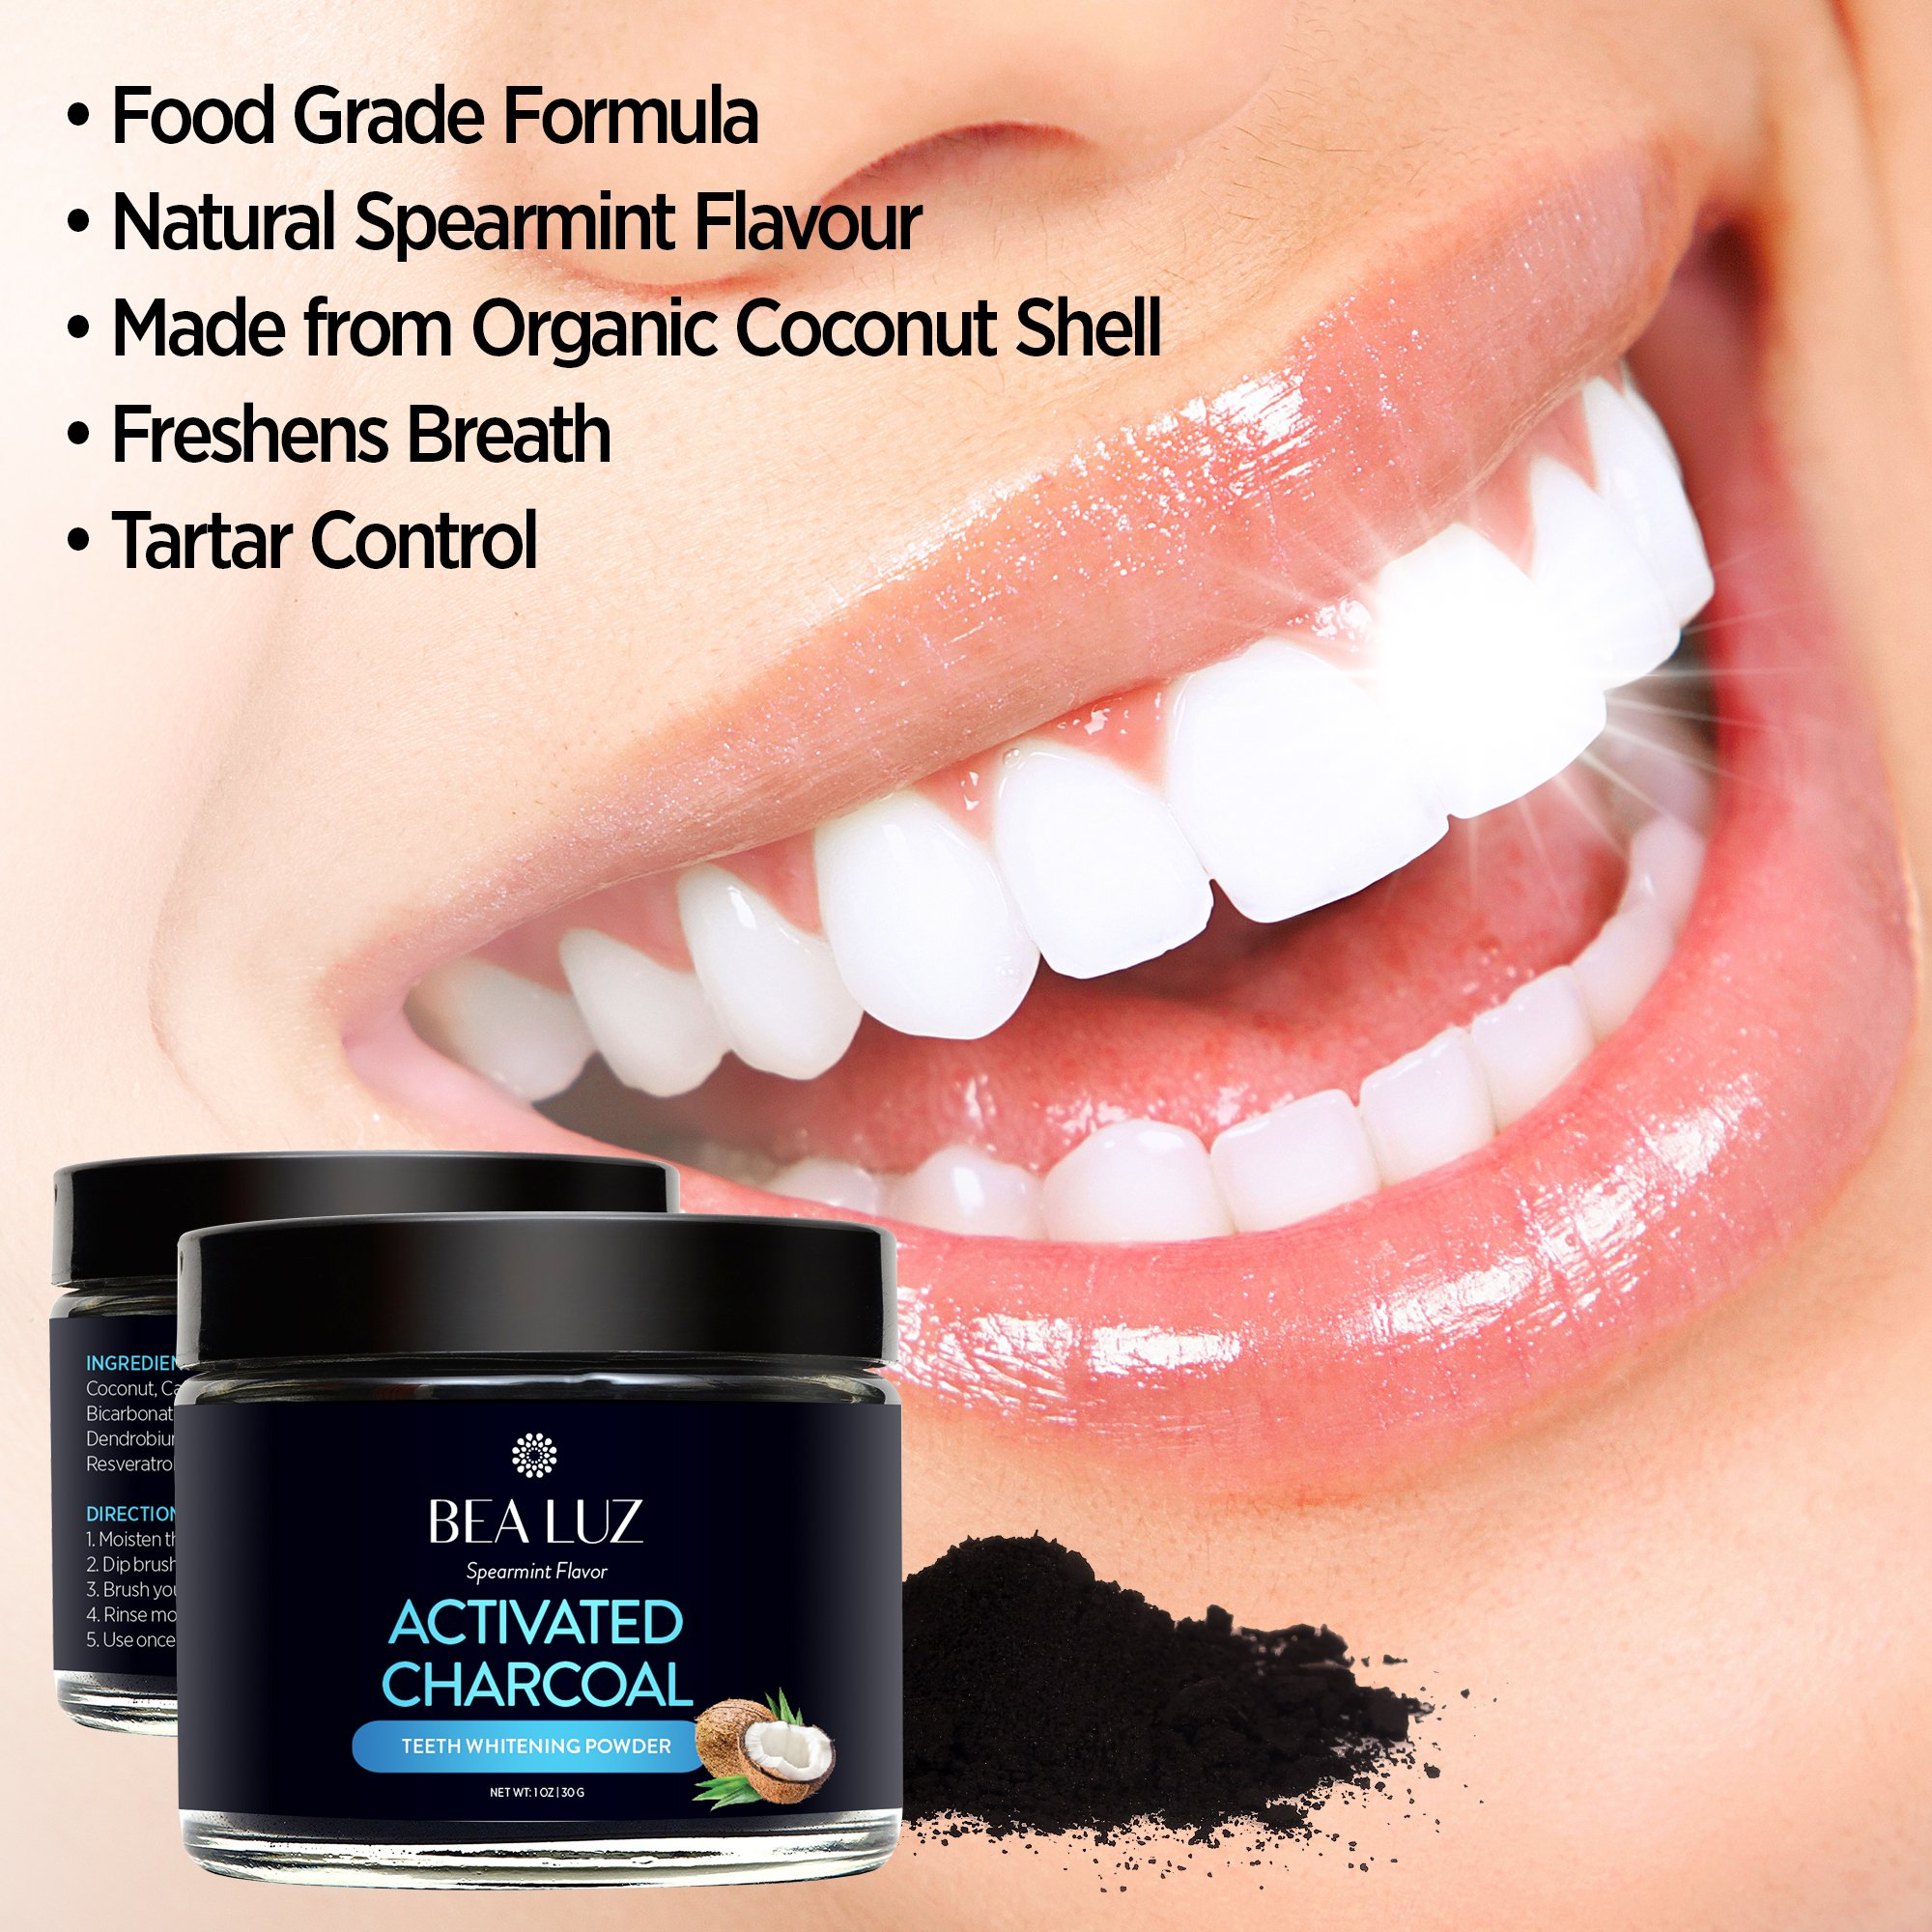 Teeth Whitening Activated Charcoal Powder – From Organic Coconut Shell and Food Grade Formula – All Natural Spearmint Flavor Tooth Whitener (5G) by Gemmaz (Image #4)